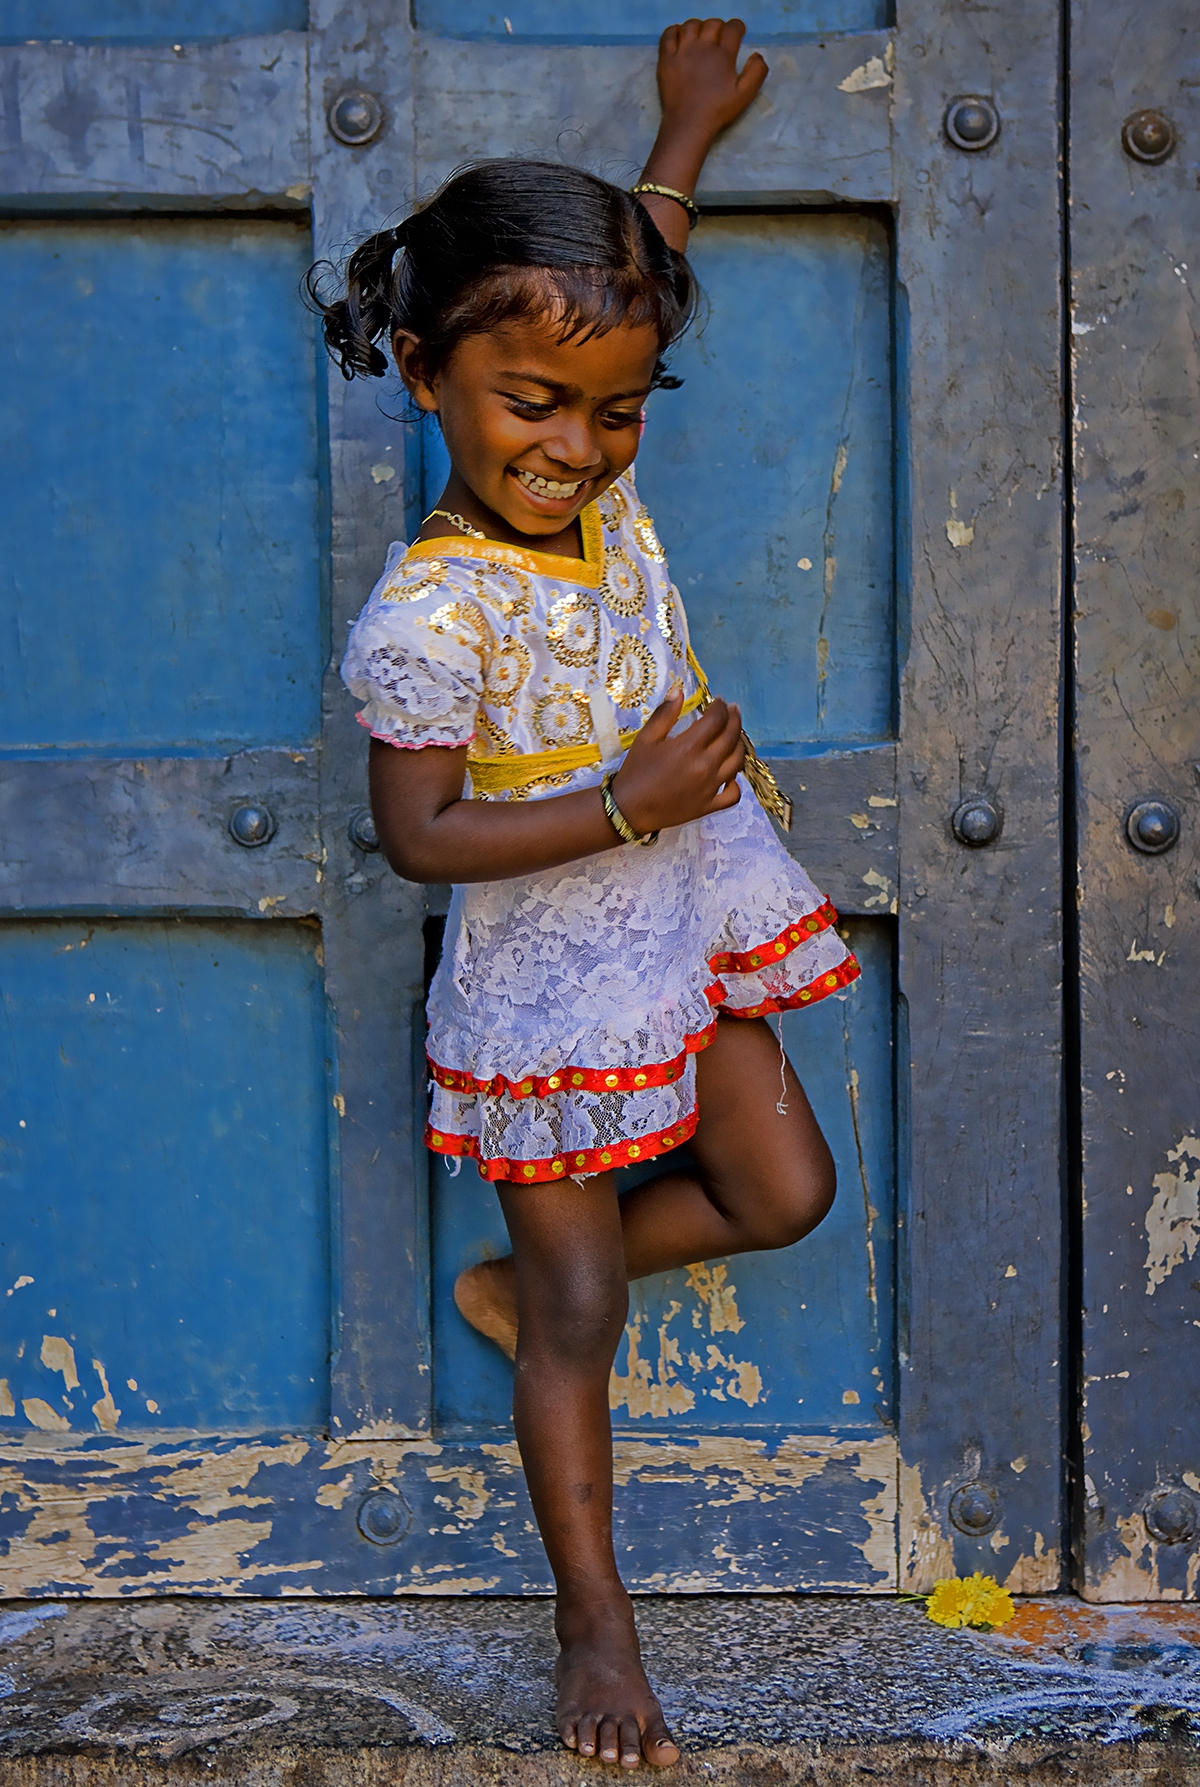 India - photography, india, children - pierocefaloni | ello